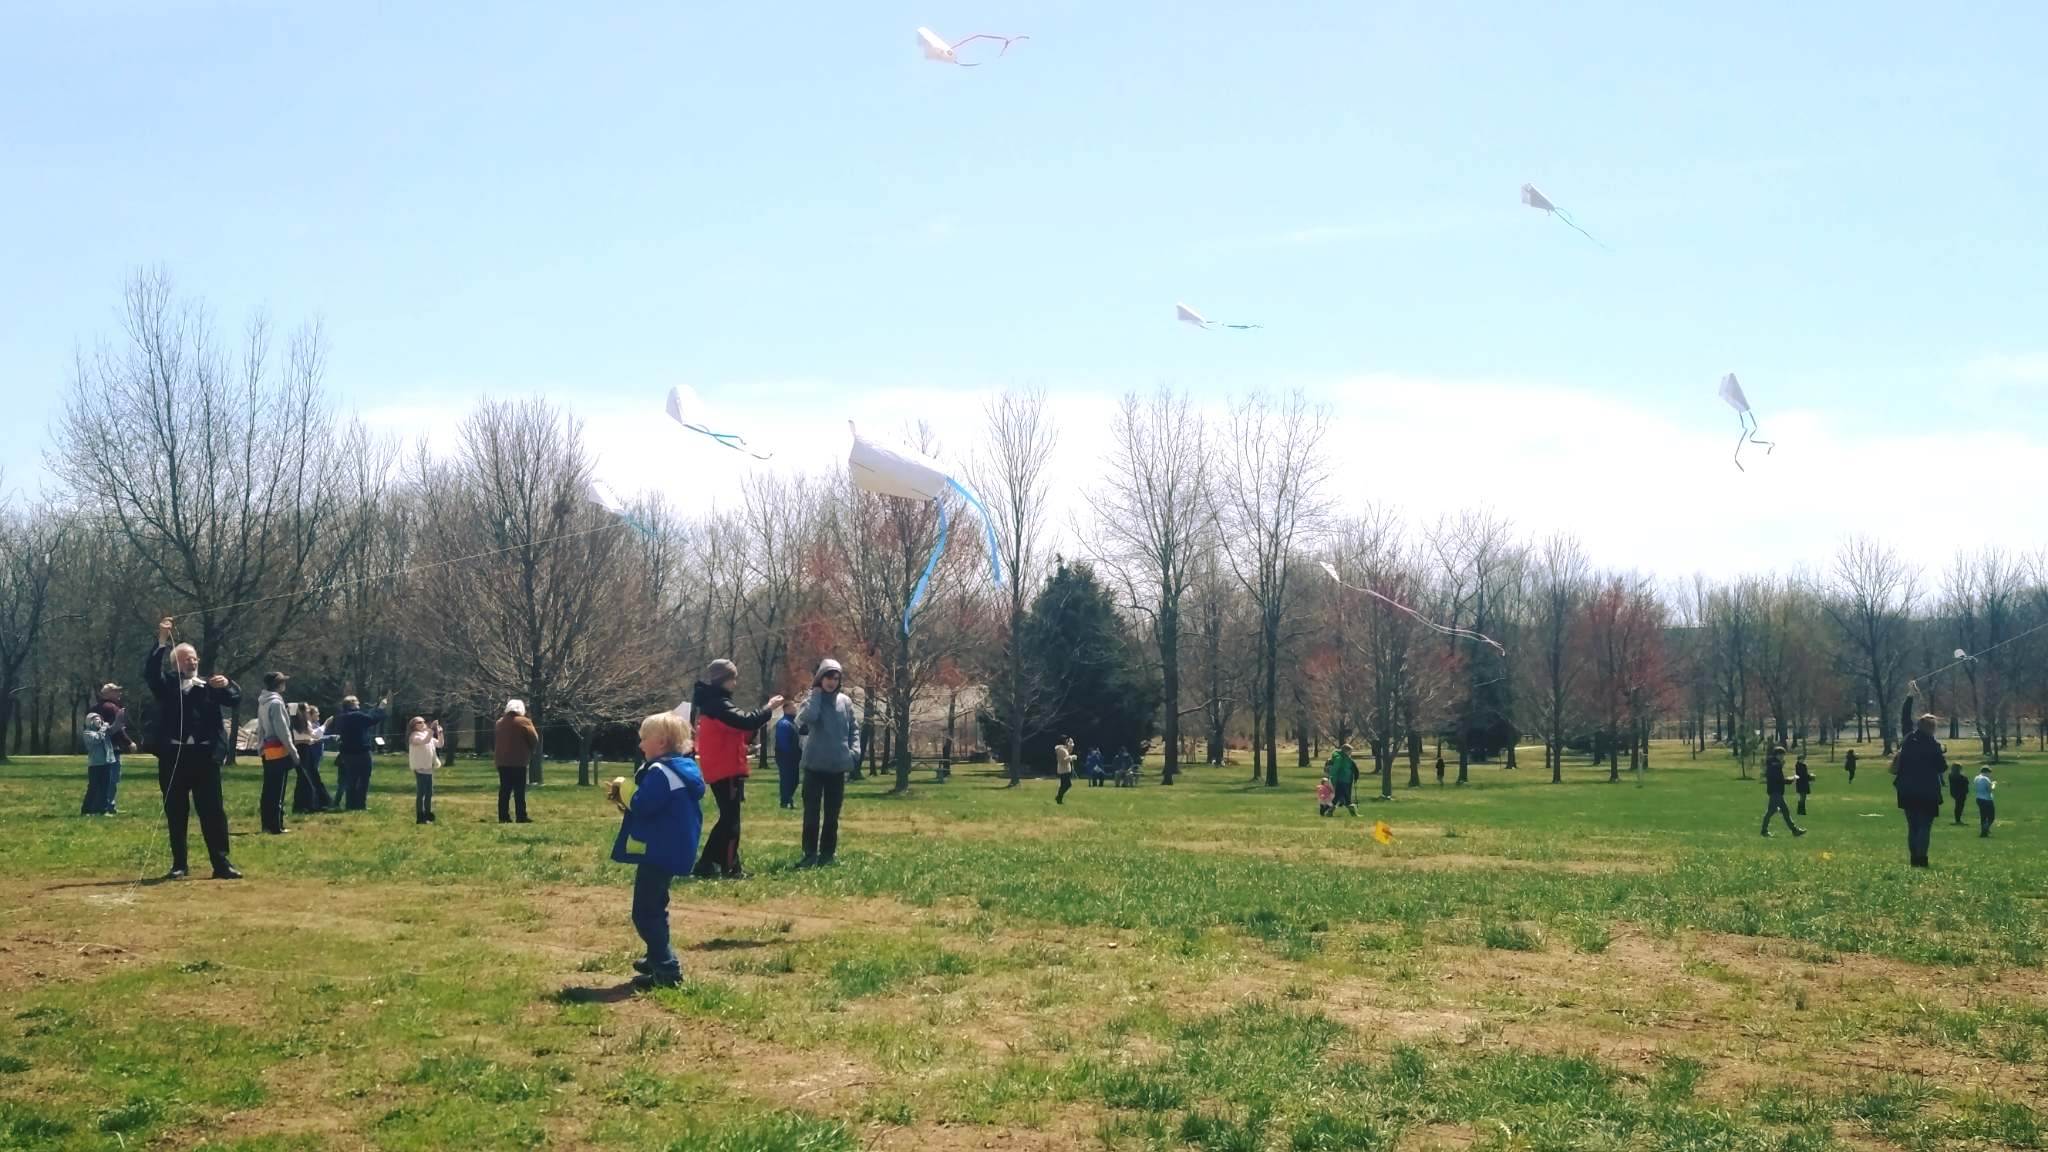 Kite Festival endures weather for successful celebration of spring and culture